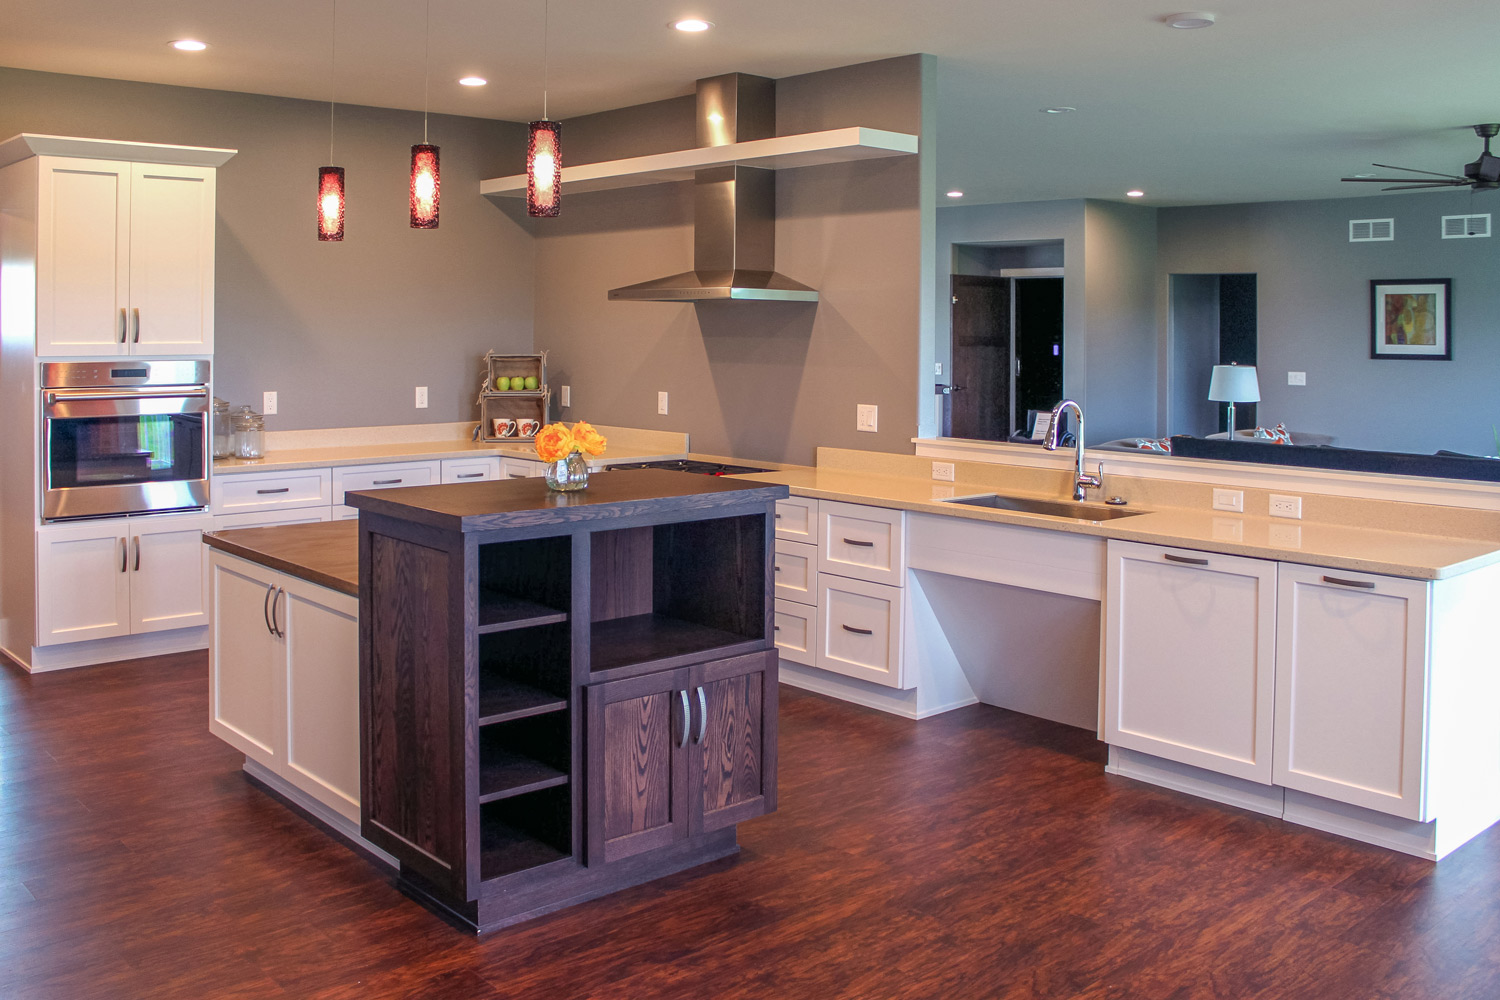 - This universal design kitchen was built to accommodate the user of a wheelchair.